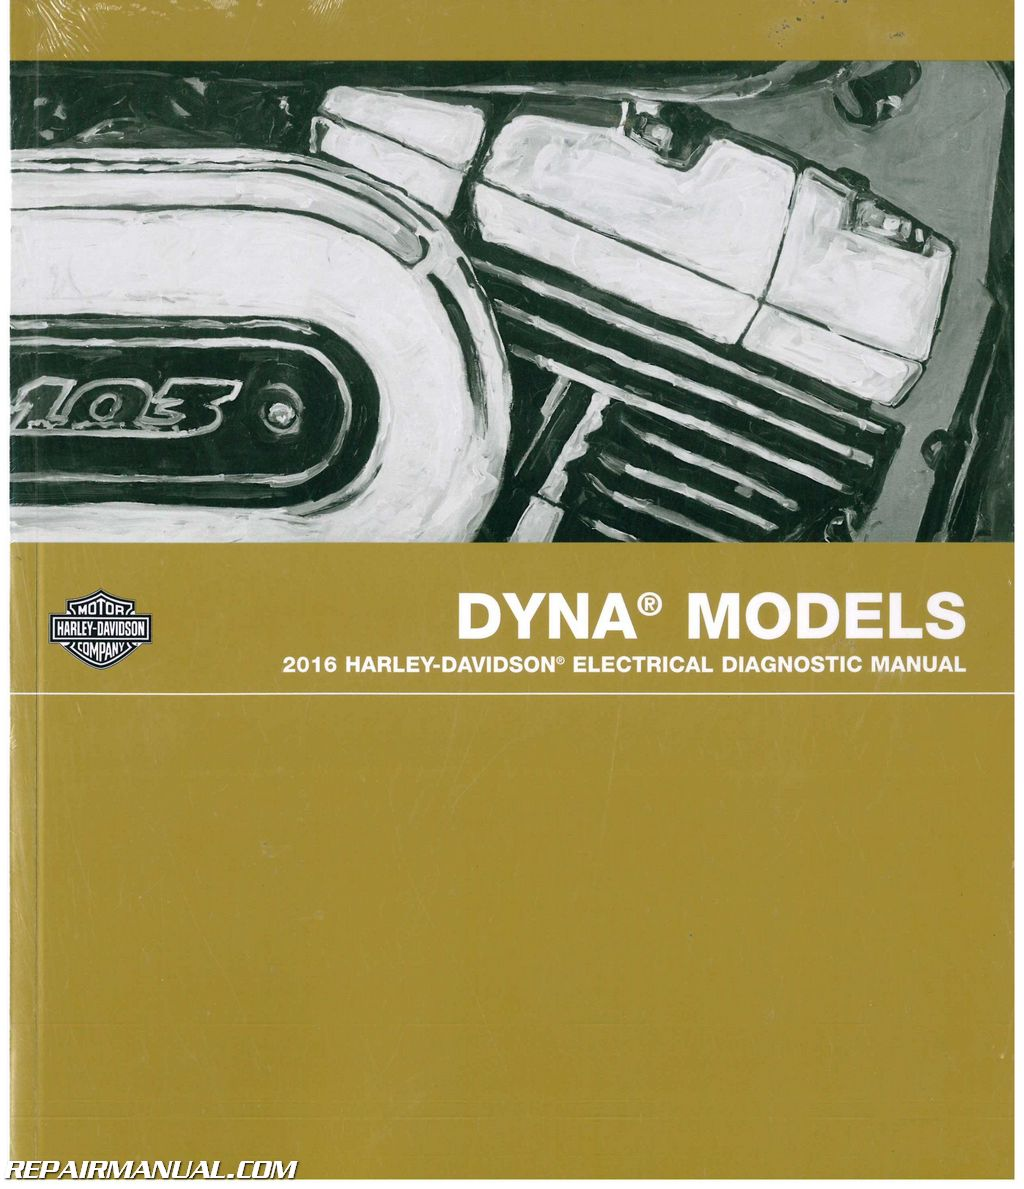 Electrical diagnostic manual For Harley on